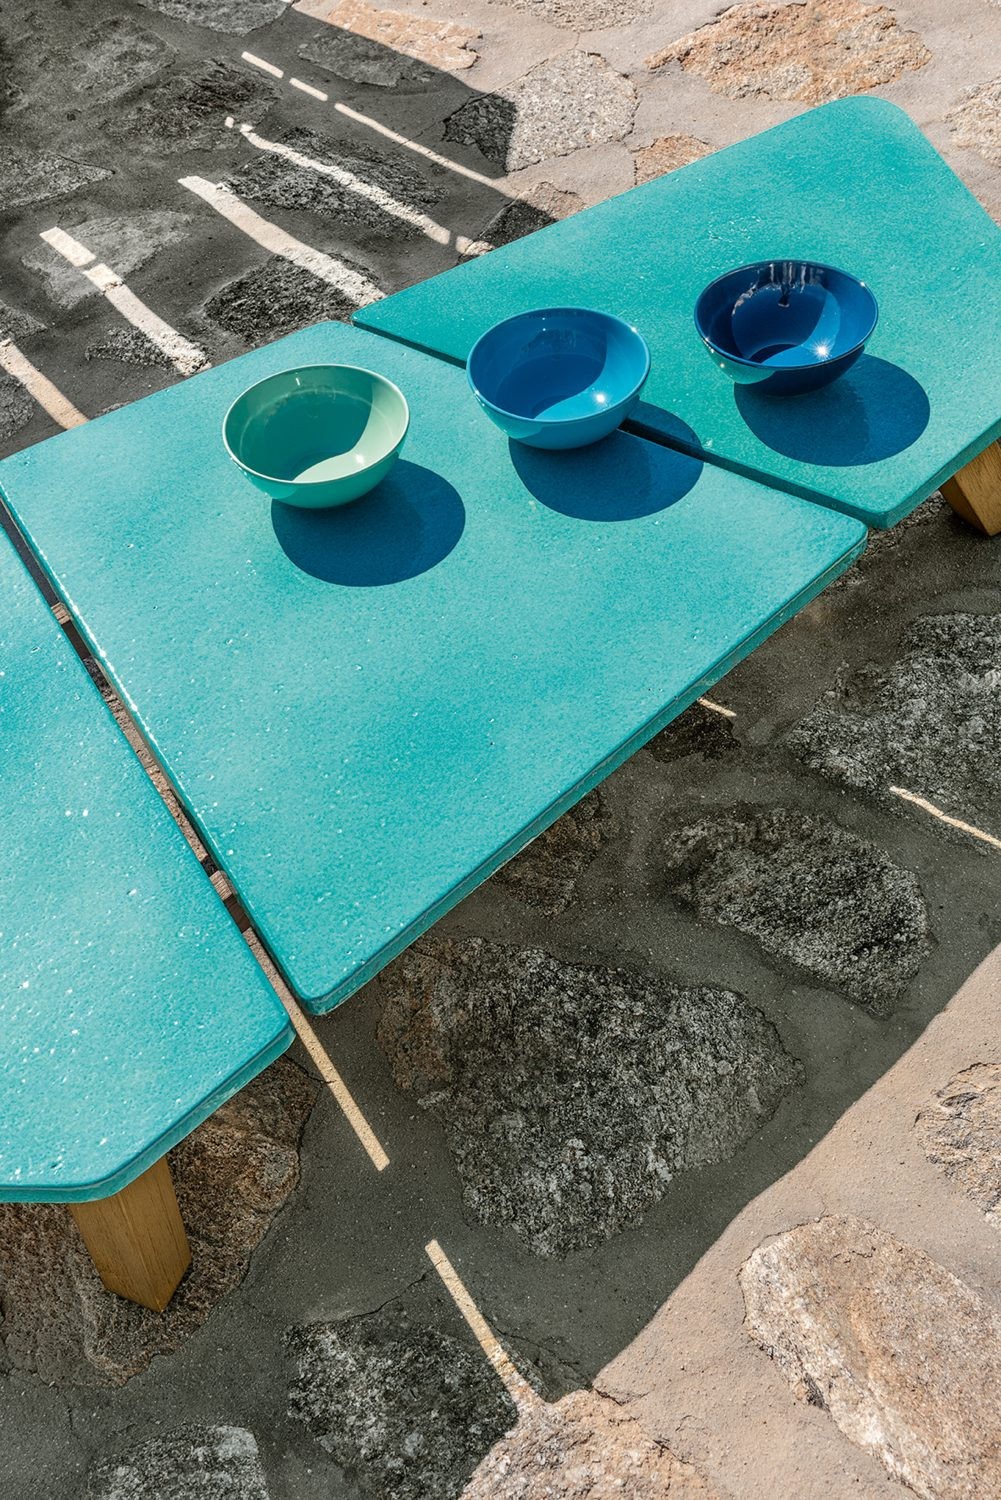 Paola Navone's Outdoor Collection Is All About Organic Shapes paola navone Paola Navone's Outdoor Collection Is All About Organic Shapes paola navones outdoor collection organic shapes 4 scaled